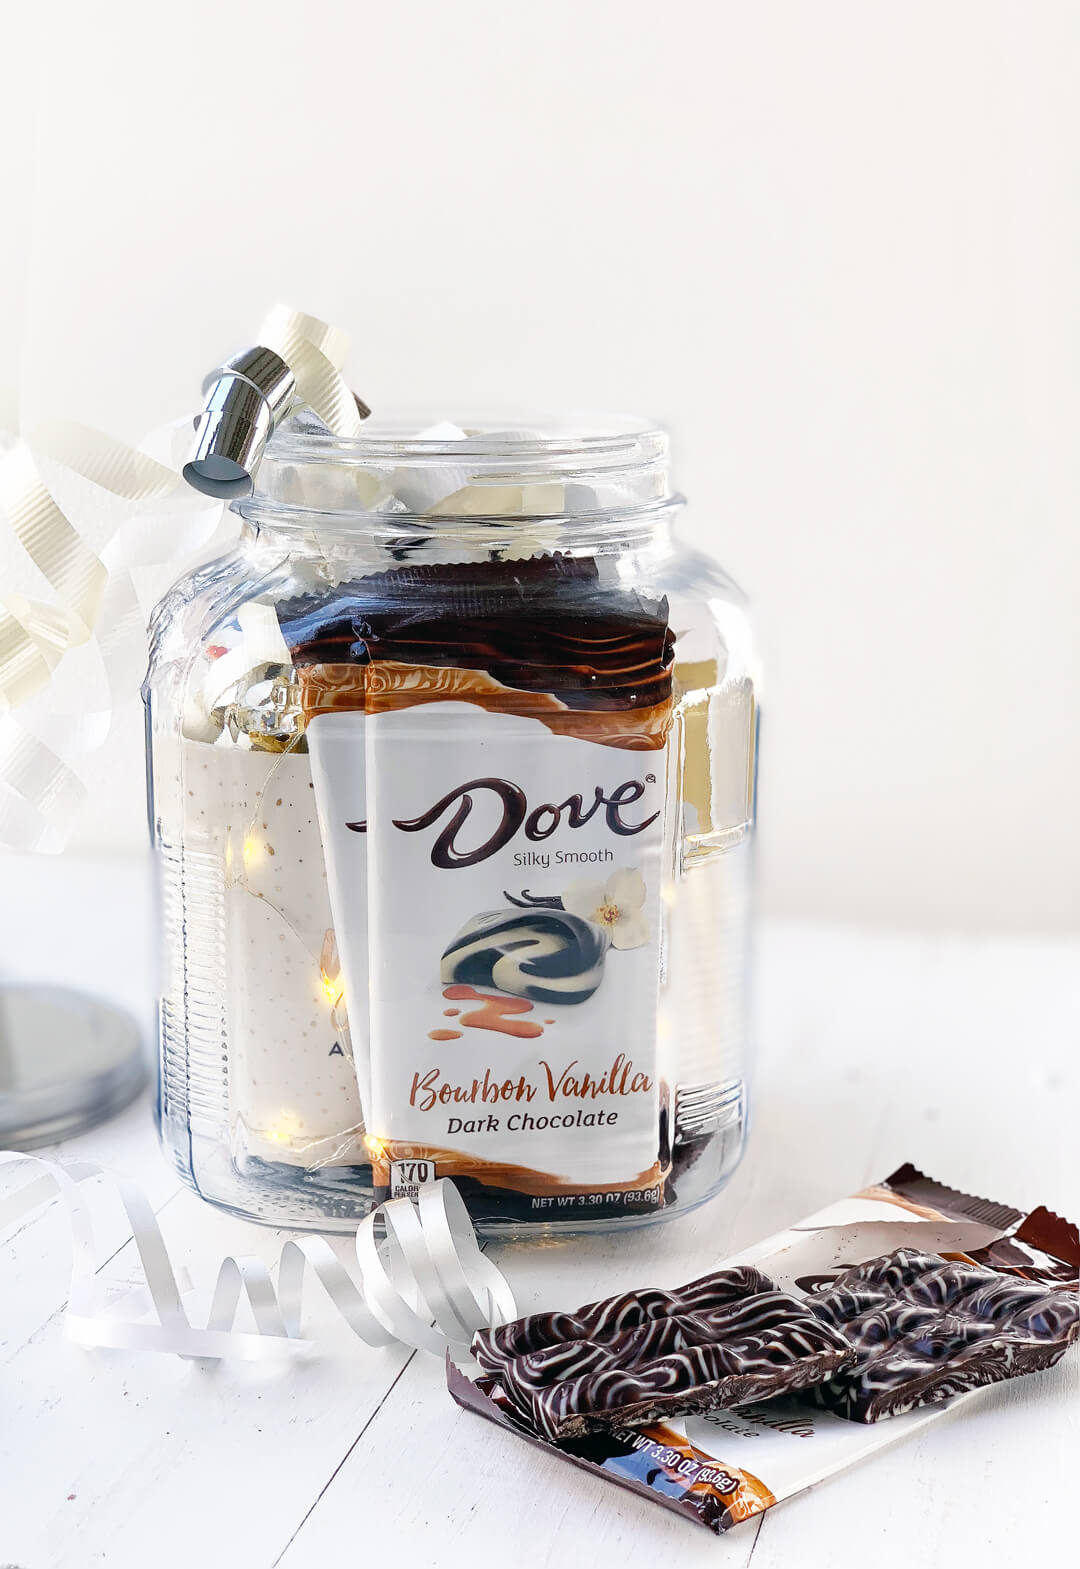 Fabulous Chocolate Bar in a Jar Gift Ideas | Buy This Cook That